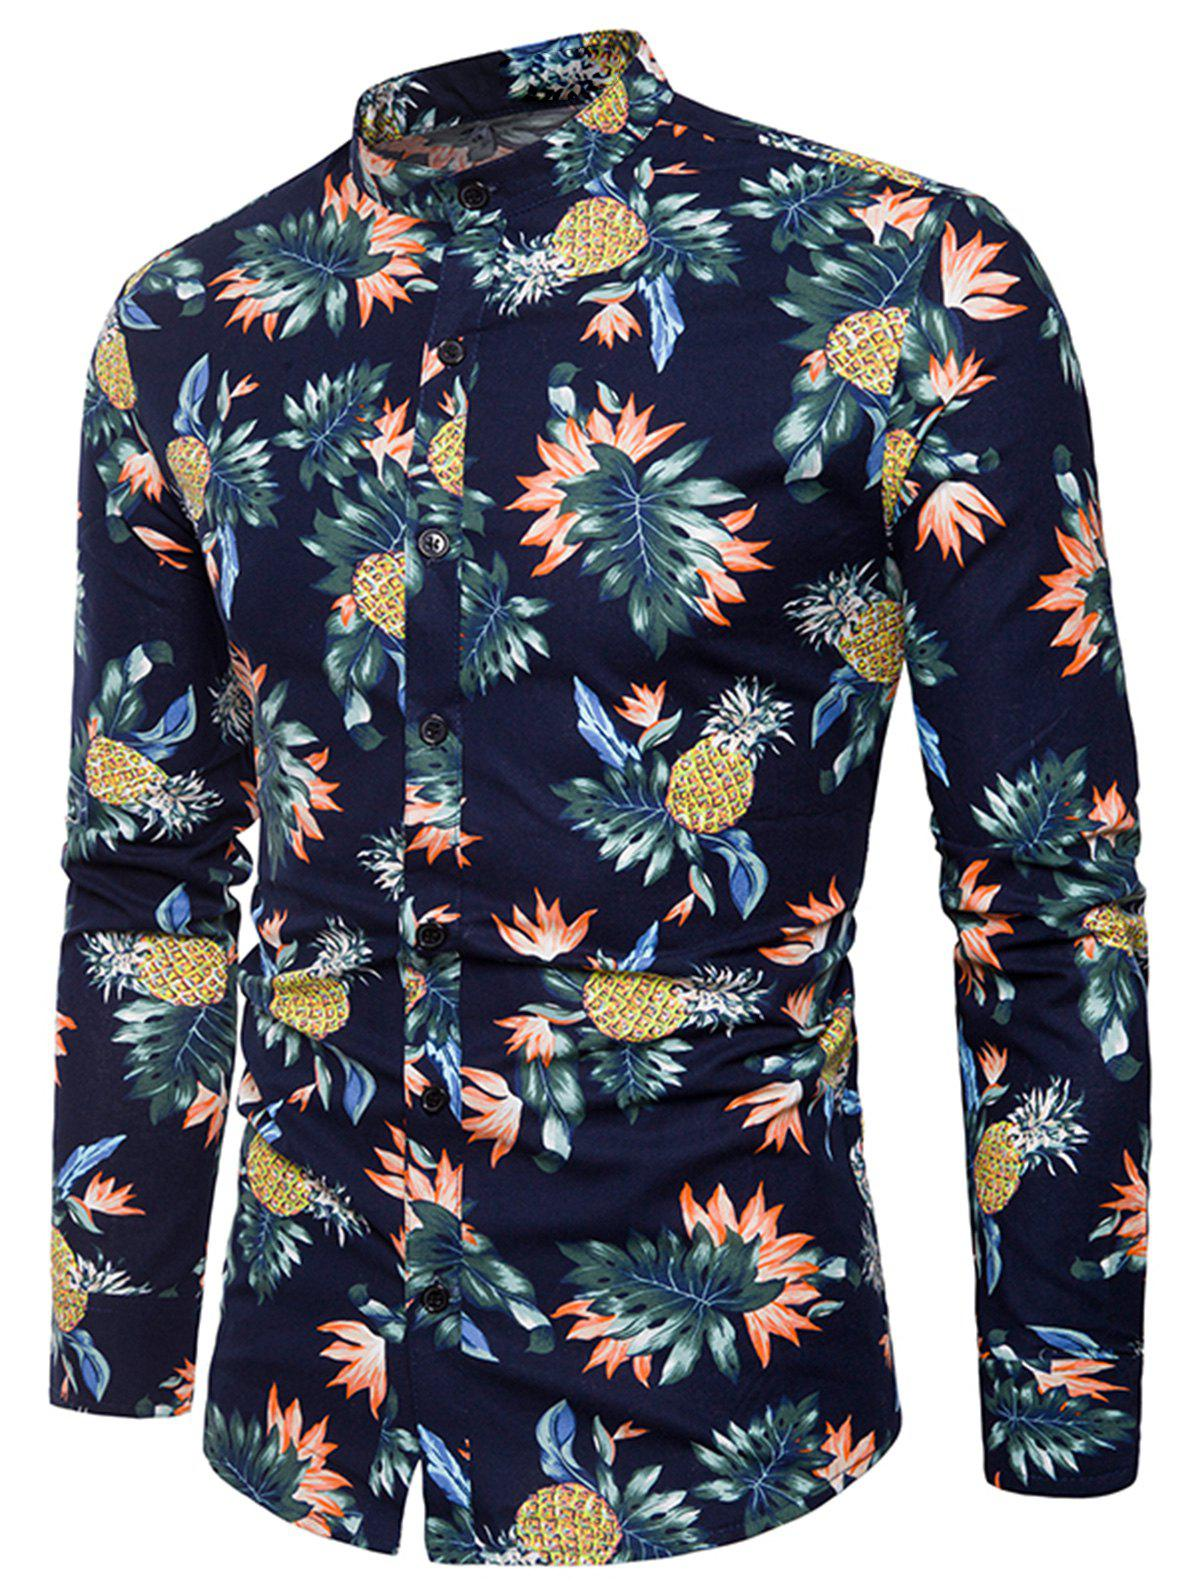 Pineapple and Floral Print Shirt - CADETBLUE 2XL